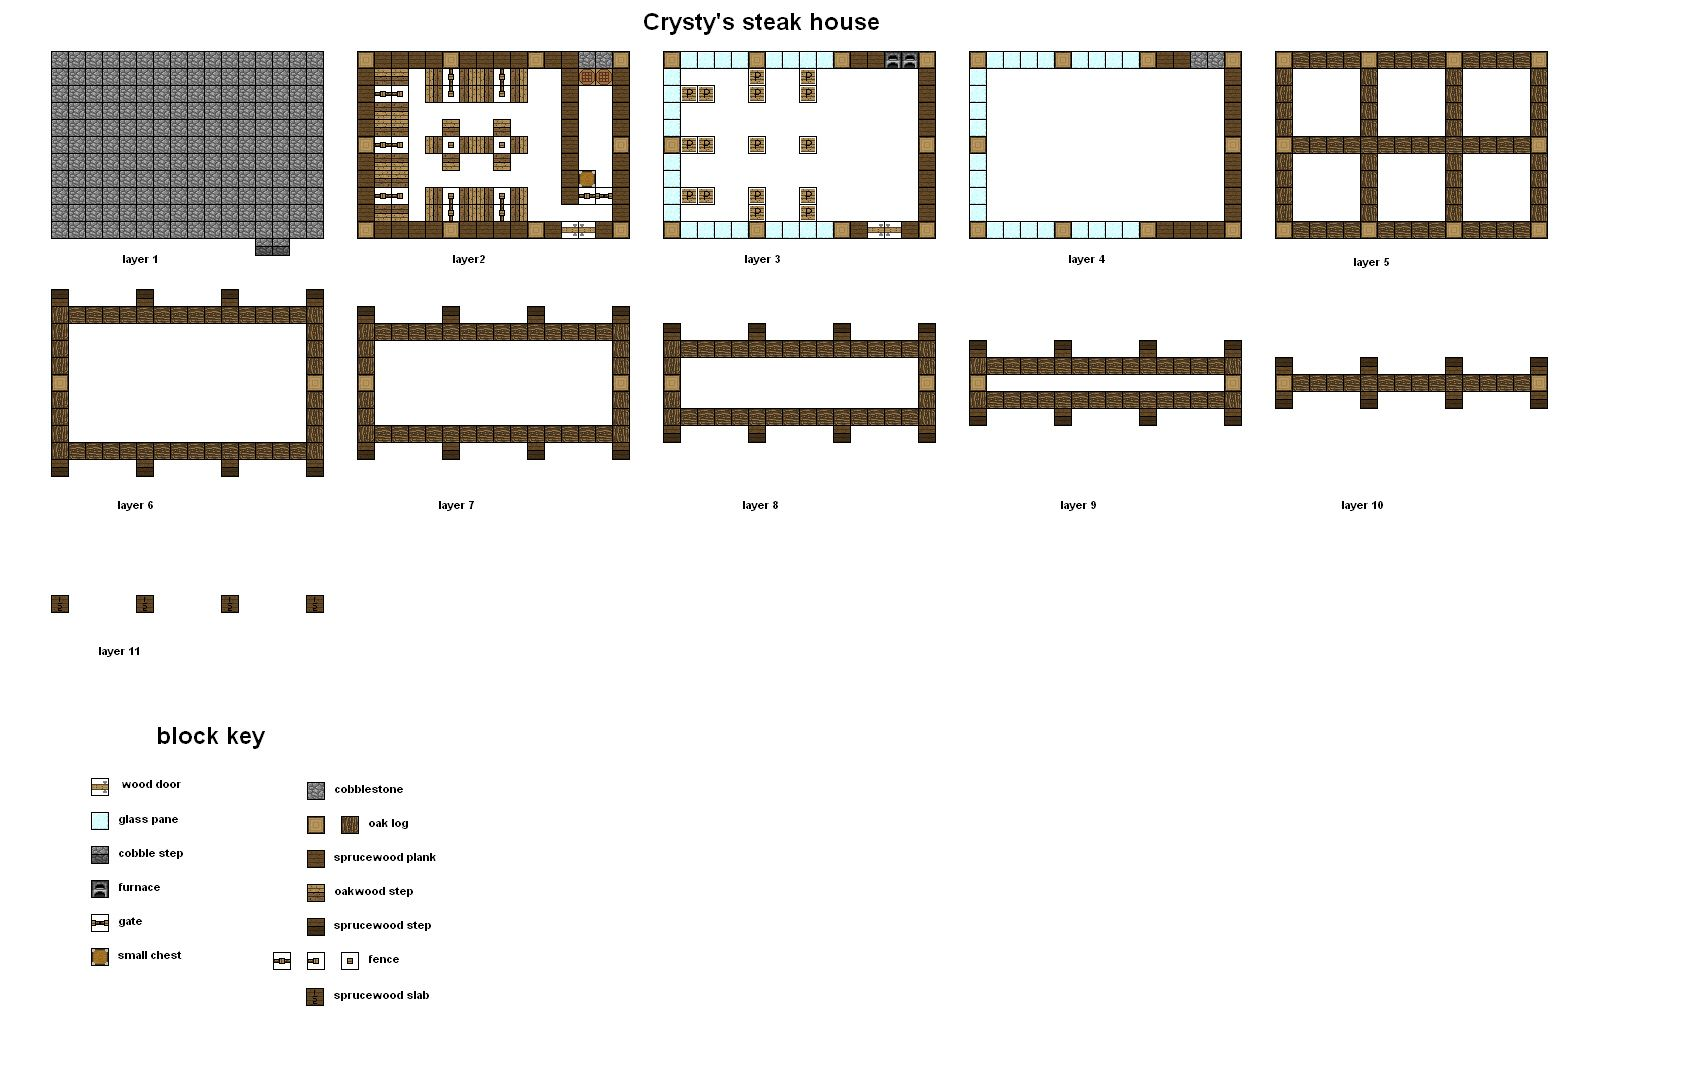 Minecraft floorplans Crusty s steak house by. minecraft village house   Google Search   Minecraft    Yes  I m a